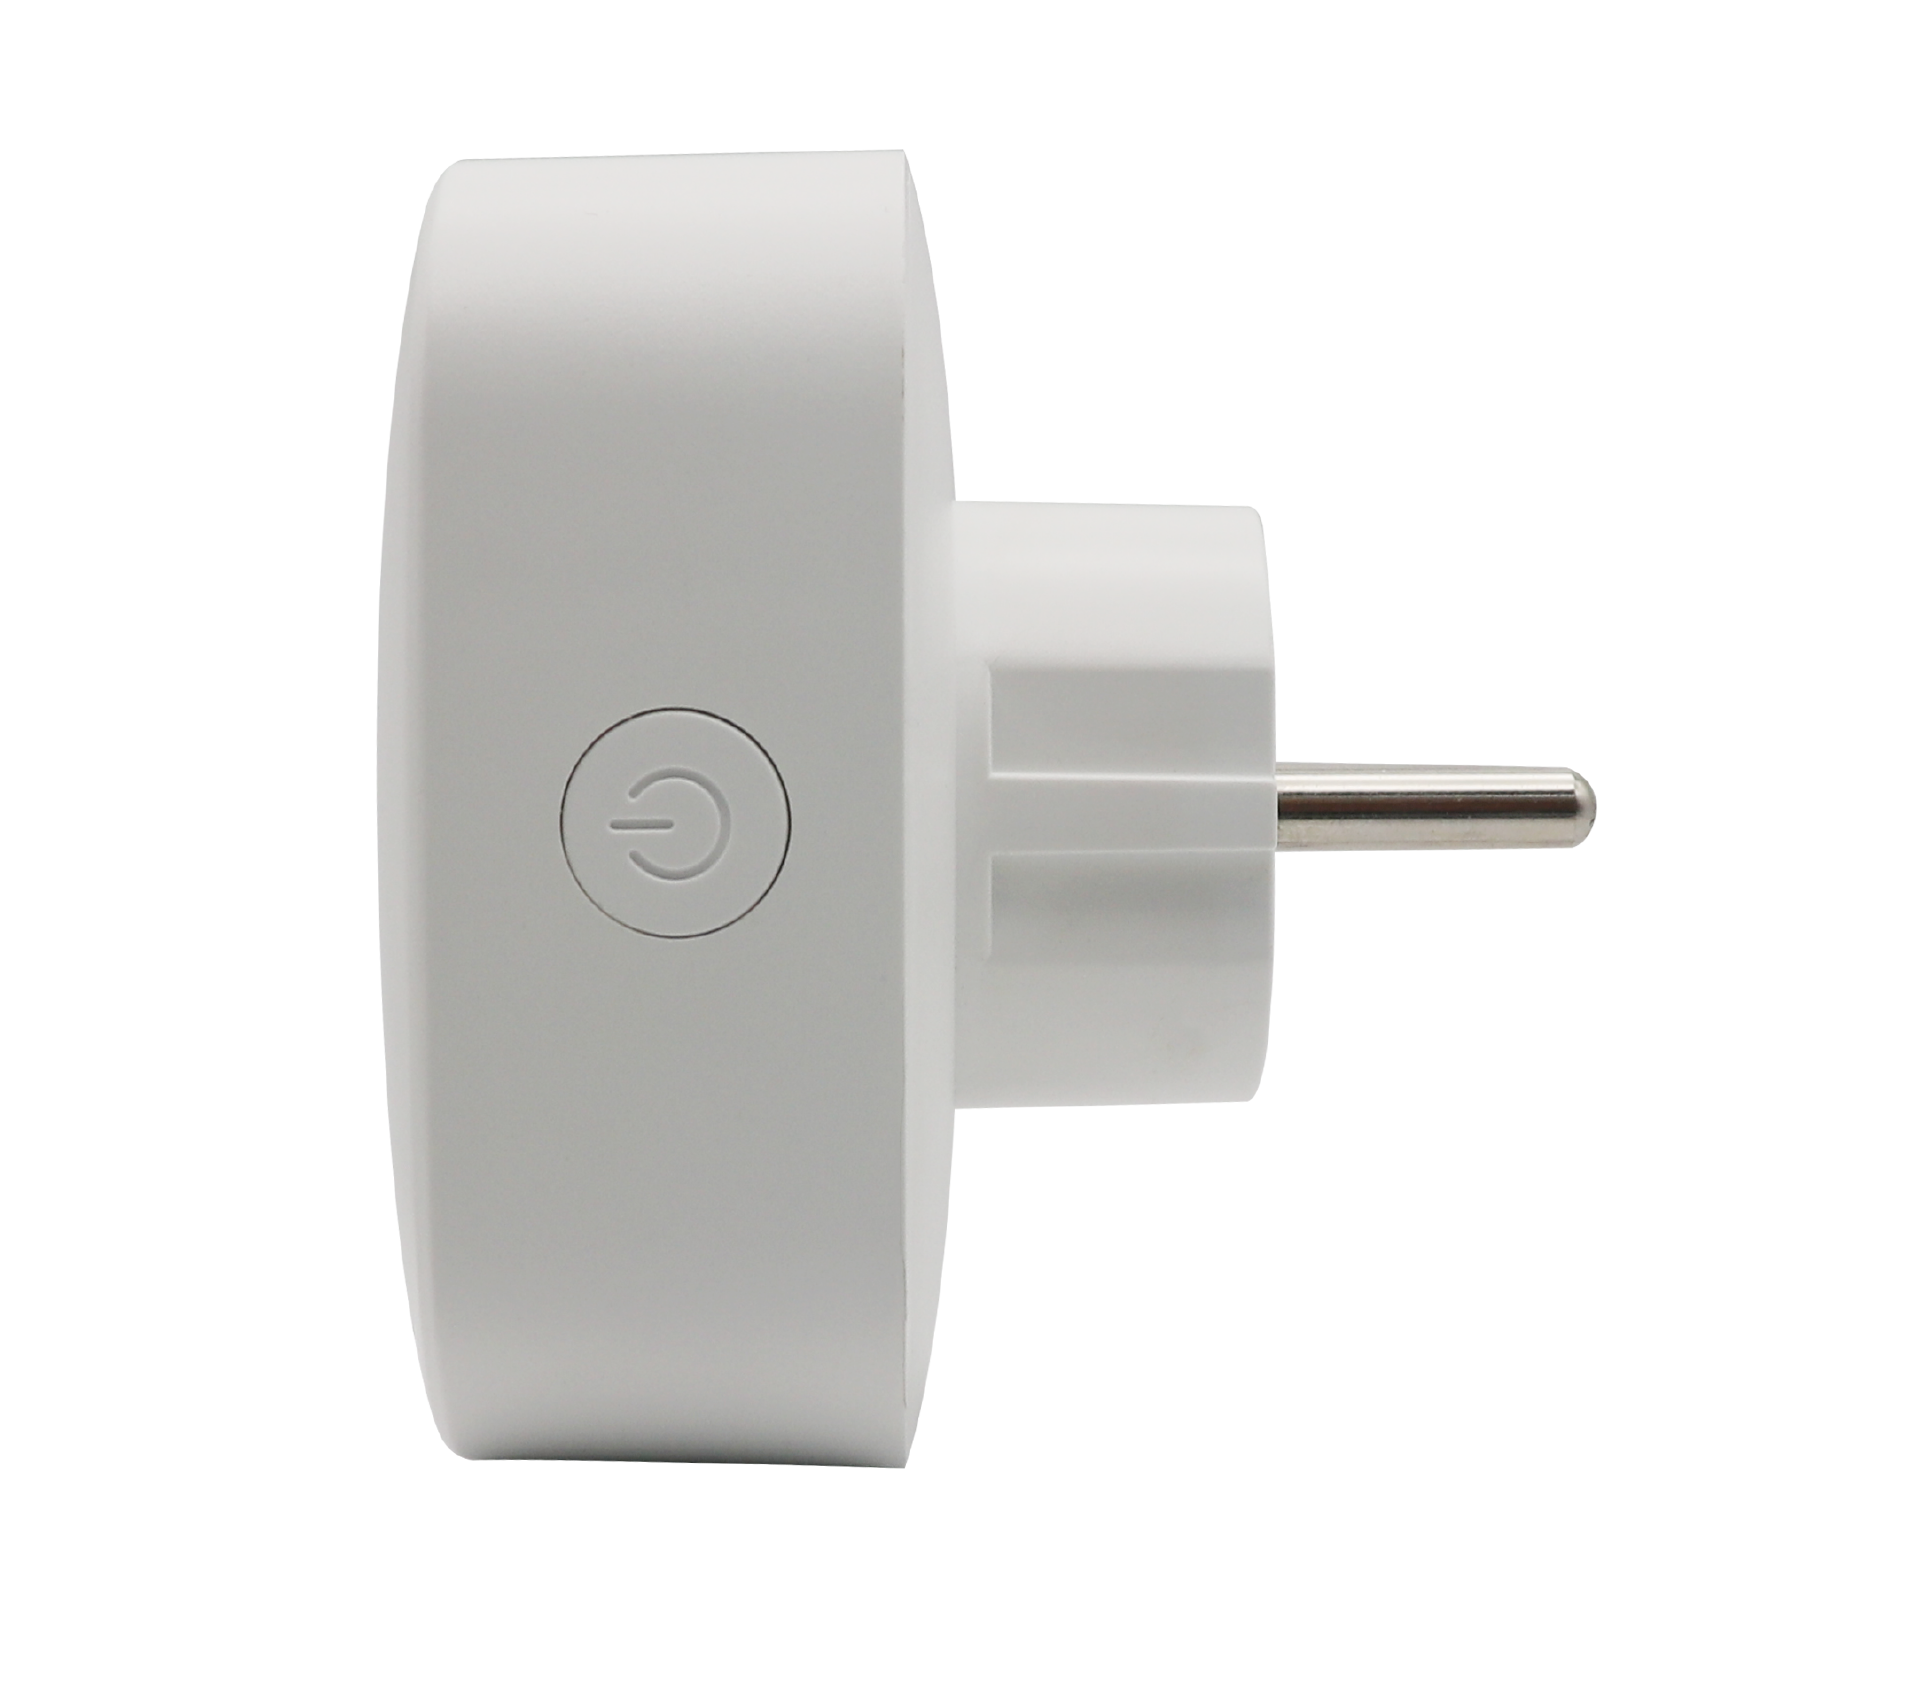 Presa intelligente standard europea WiFi Smart Plug SA-P202A